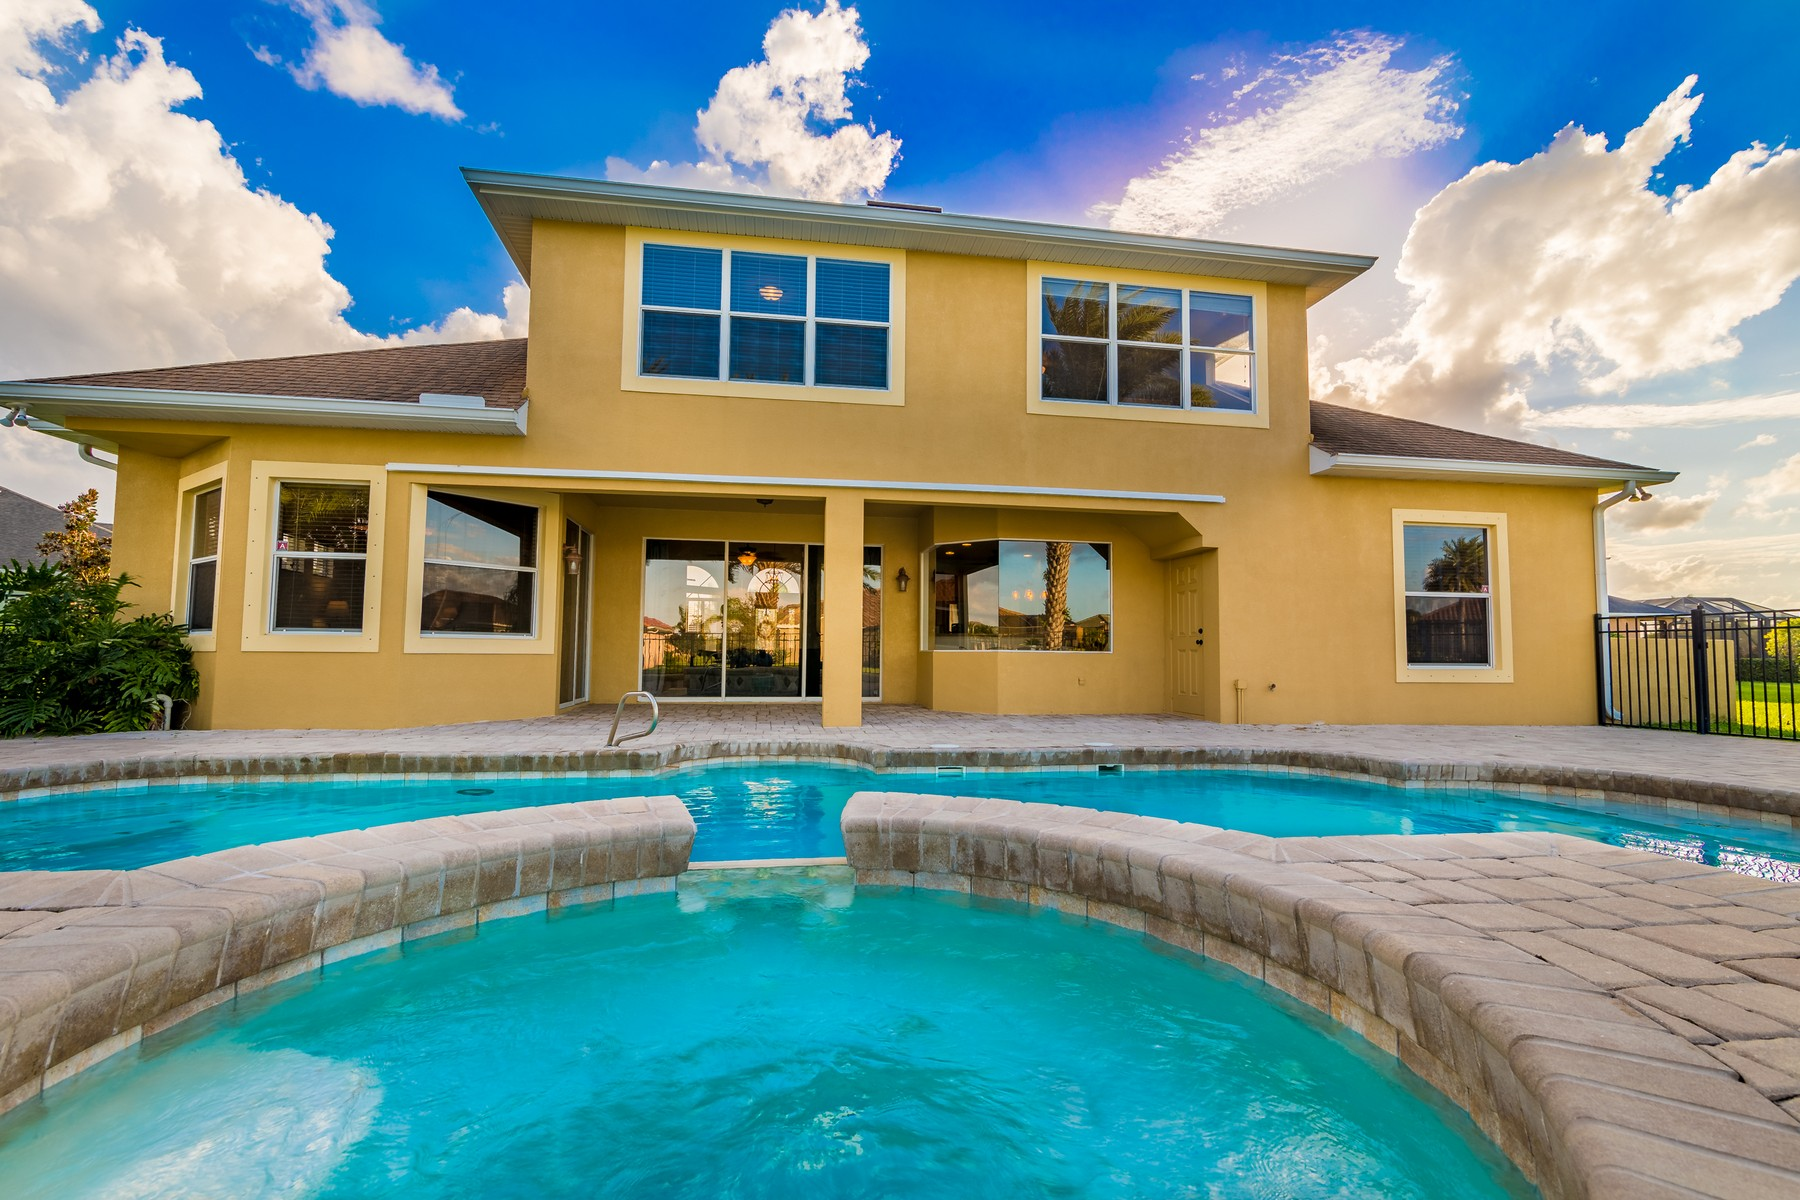 Additional photo for property listing at Gorgeous Waterfront Home in Ravencliffe 5303 Picardy Court Rockledge, Florida 32955 United States